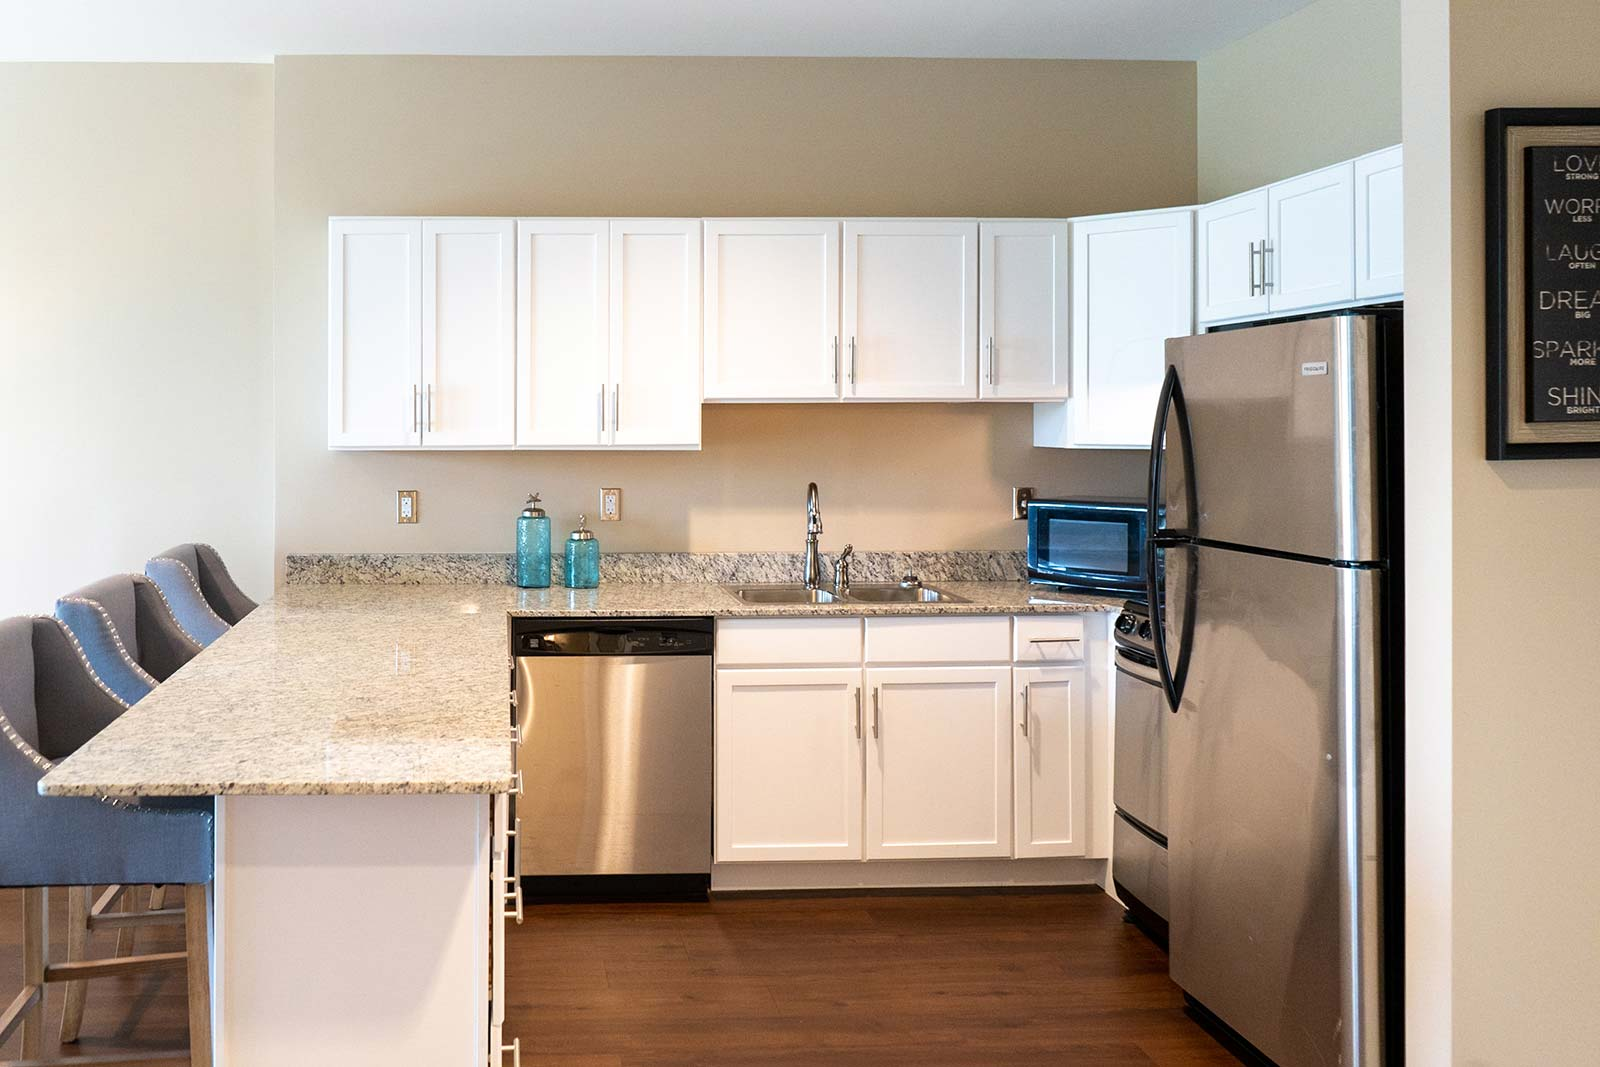 Independent living apartment kitchen at The Arbors of Gulf Breeze in Gulf Breeze, FL